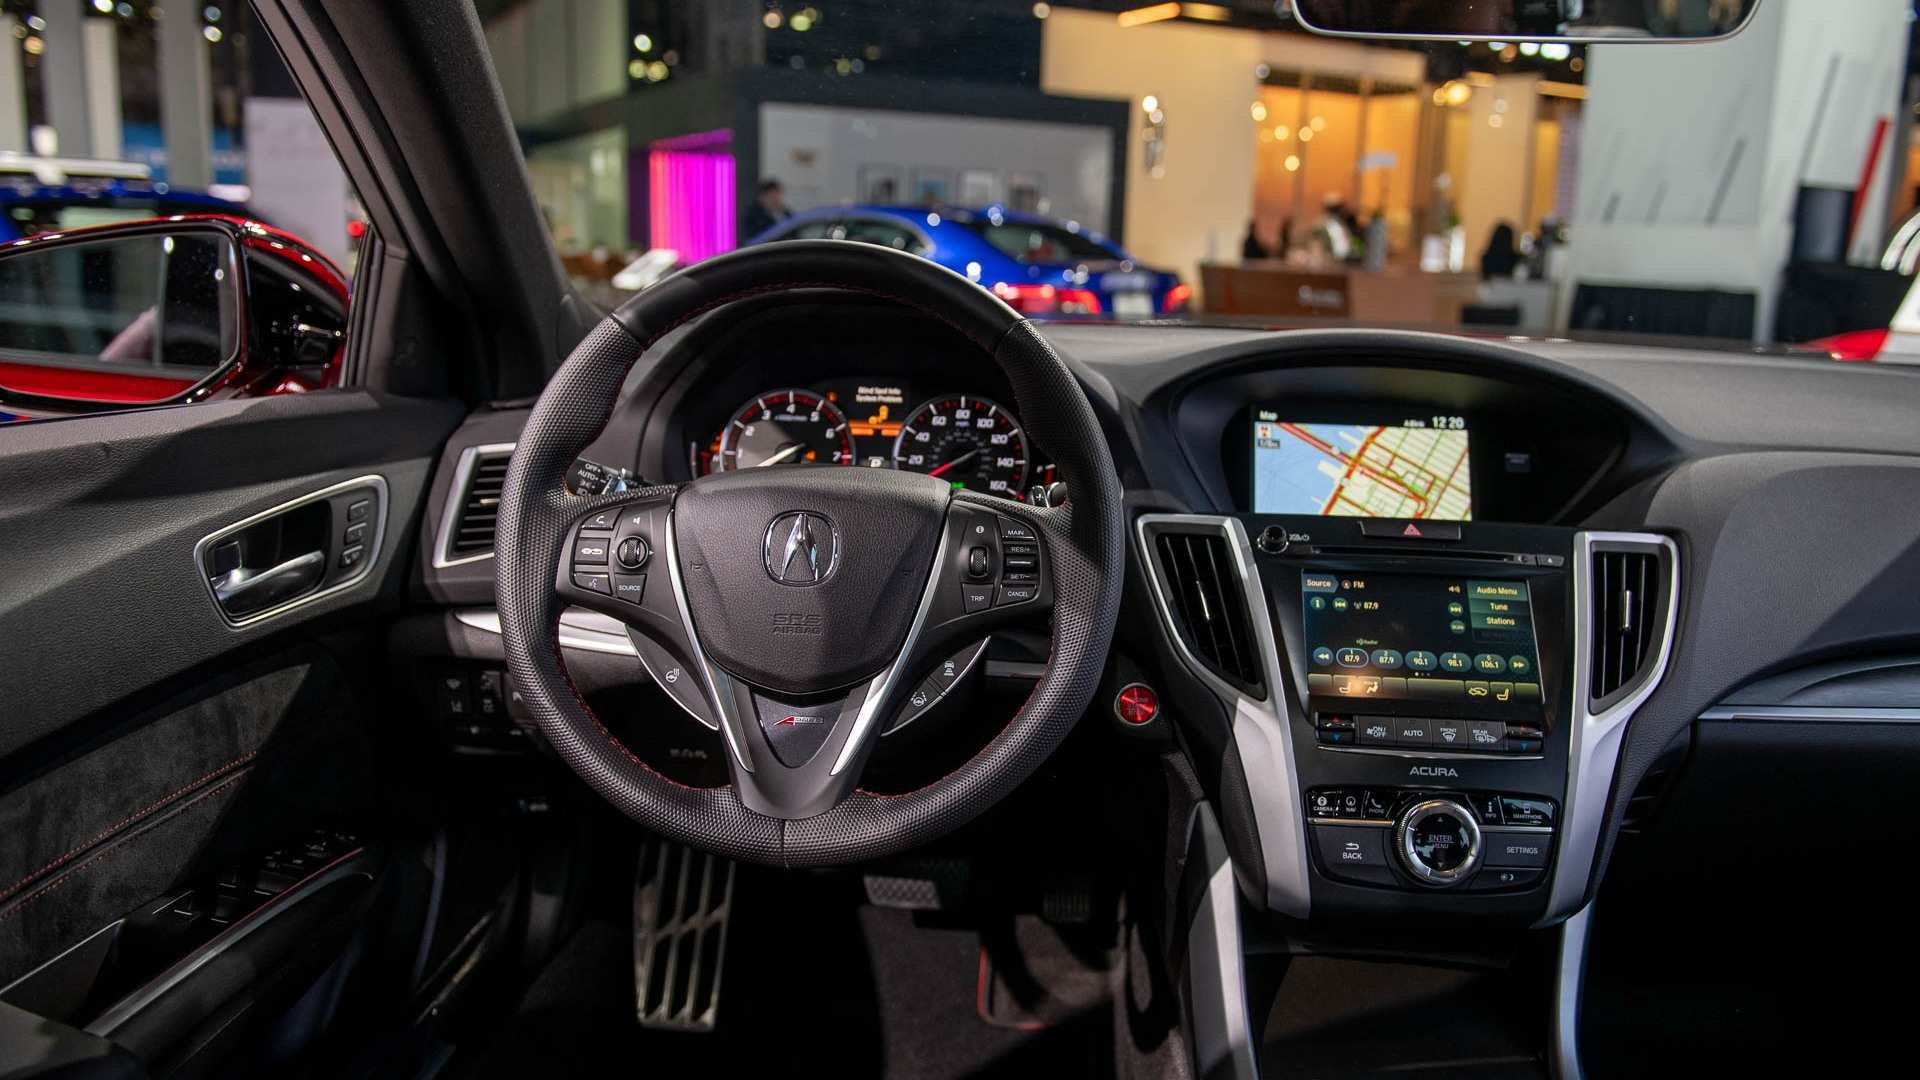 22 Gallery of 2020 Acura Tlx Pmc Edition Specs Prices with 2020 Acura Tlx Pmc Edition Specs